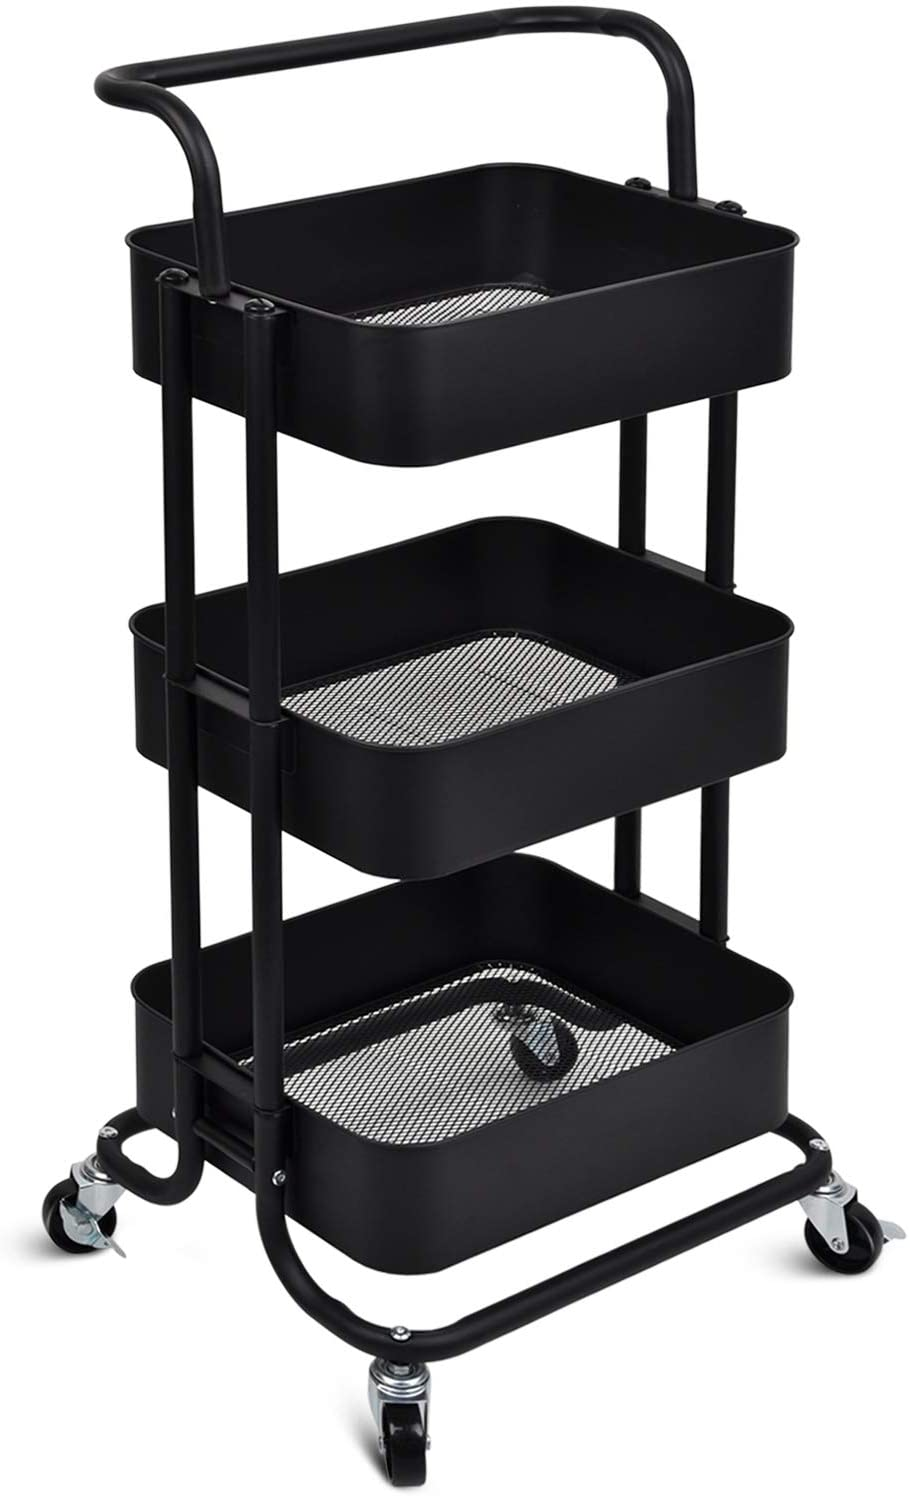 HANKEY Storage cart with Wheels 3 Tier Rolling cart Craft cart with 3 Shelves, Removable Handle, Rust-Resistant, Waterproof, Robust, Easy to Assemble(Black)